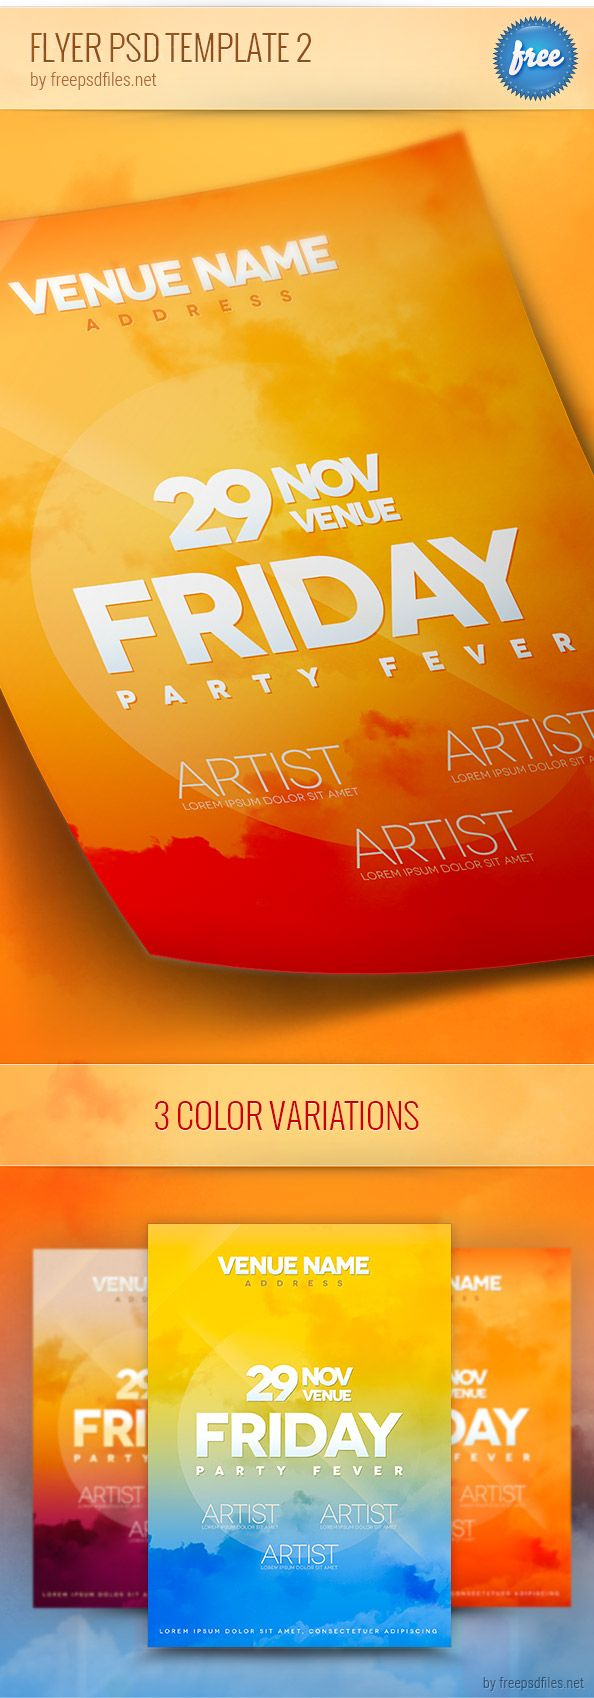 Flyer psd template designed in 3 different color schemes ...